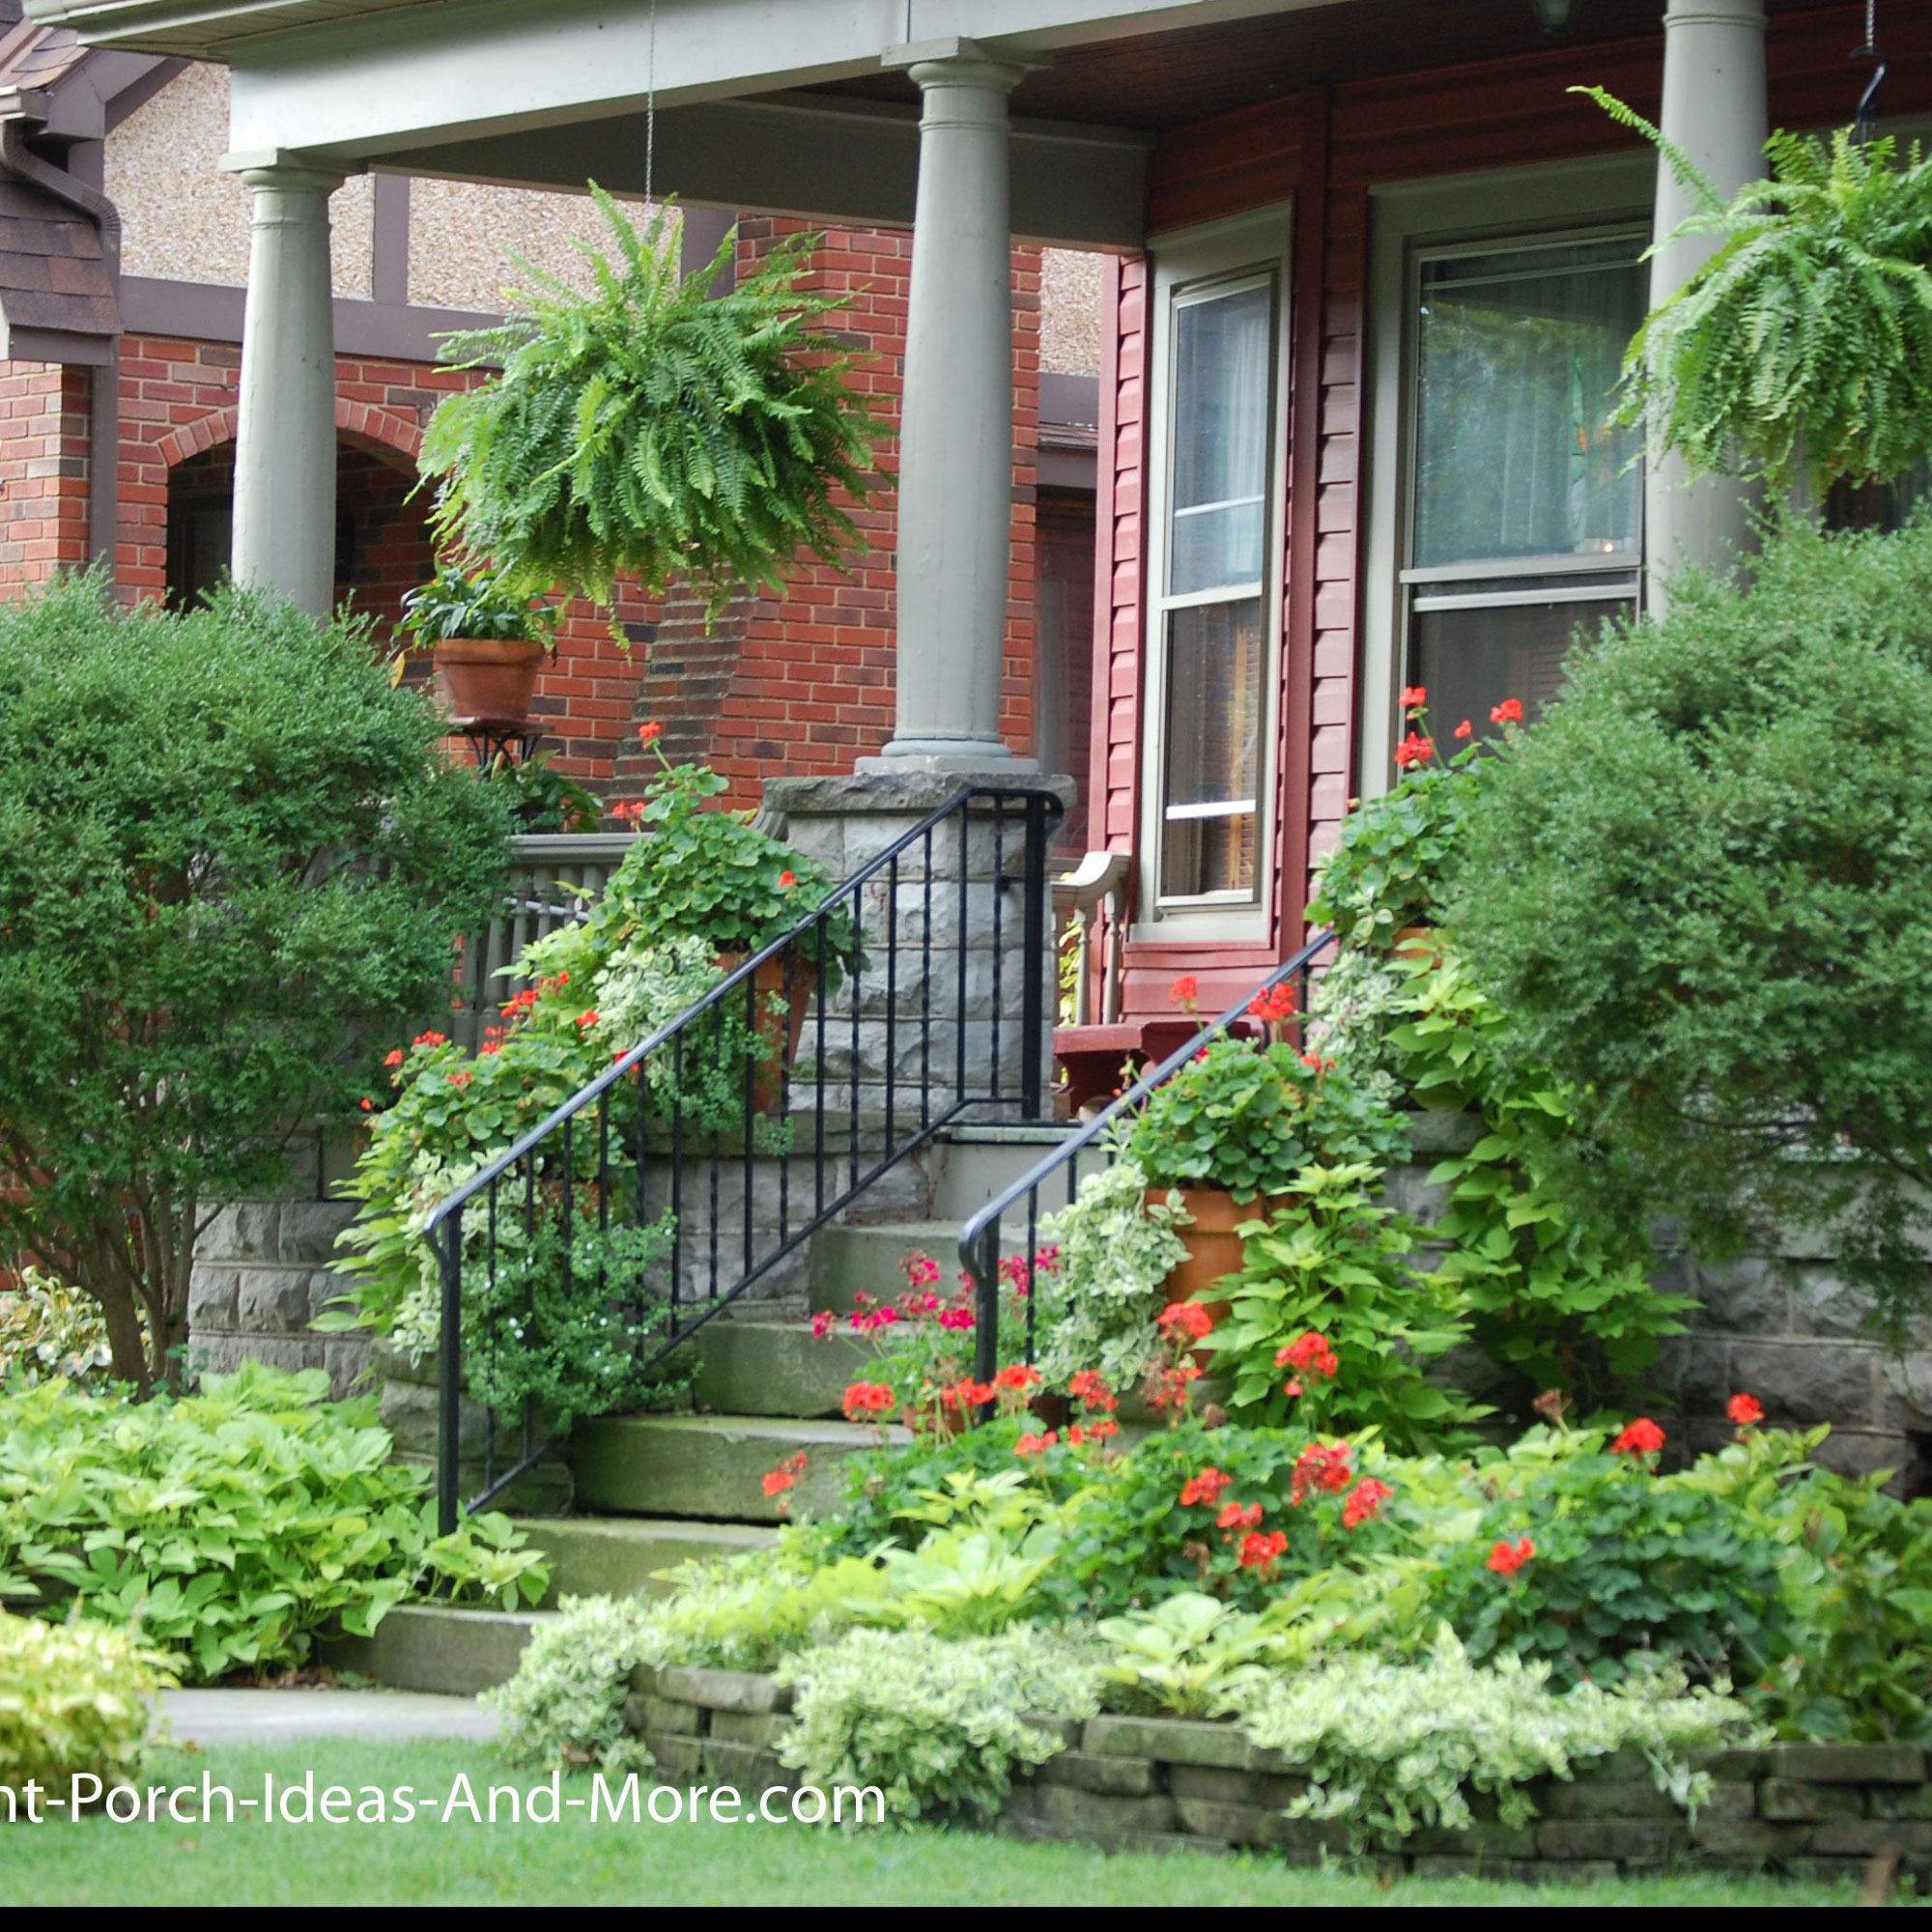 Porch landscaping ideas for your front yard and more for Design and landscape